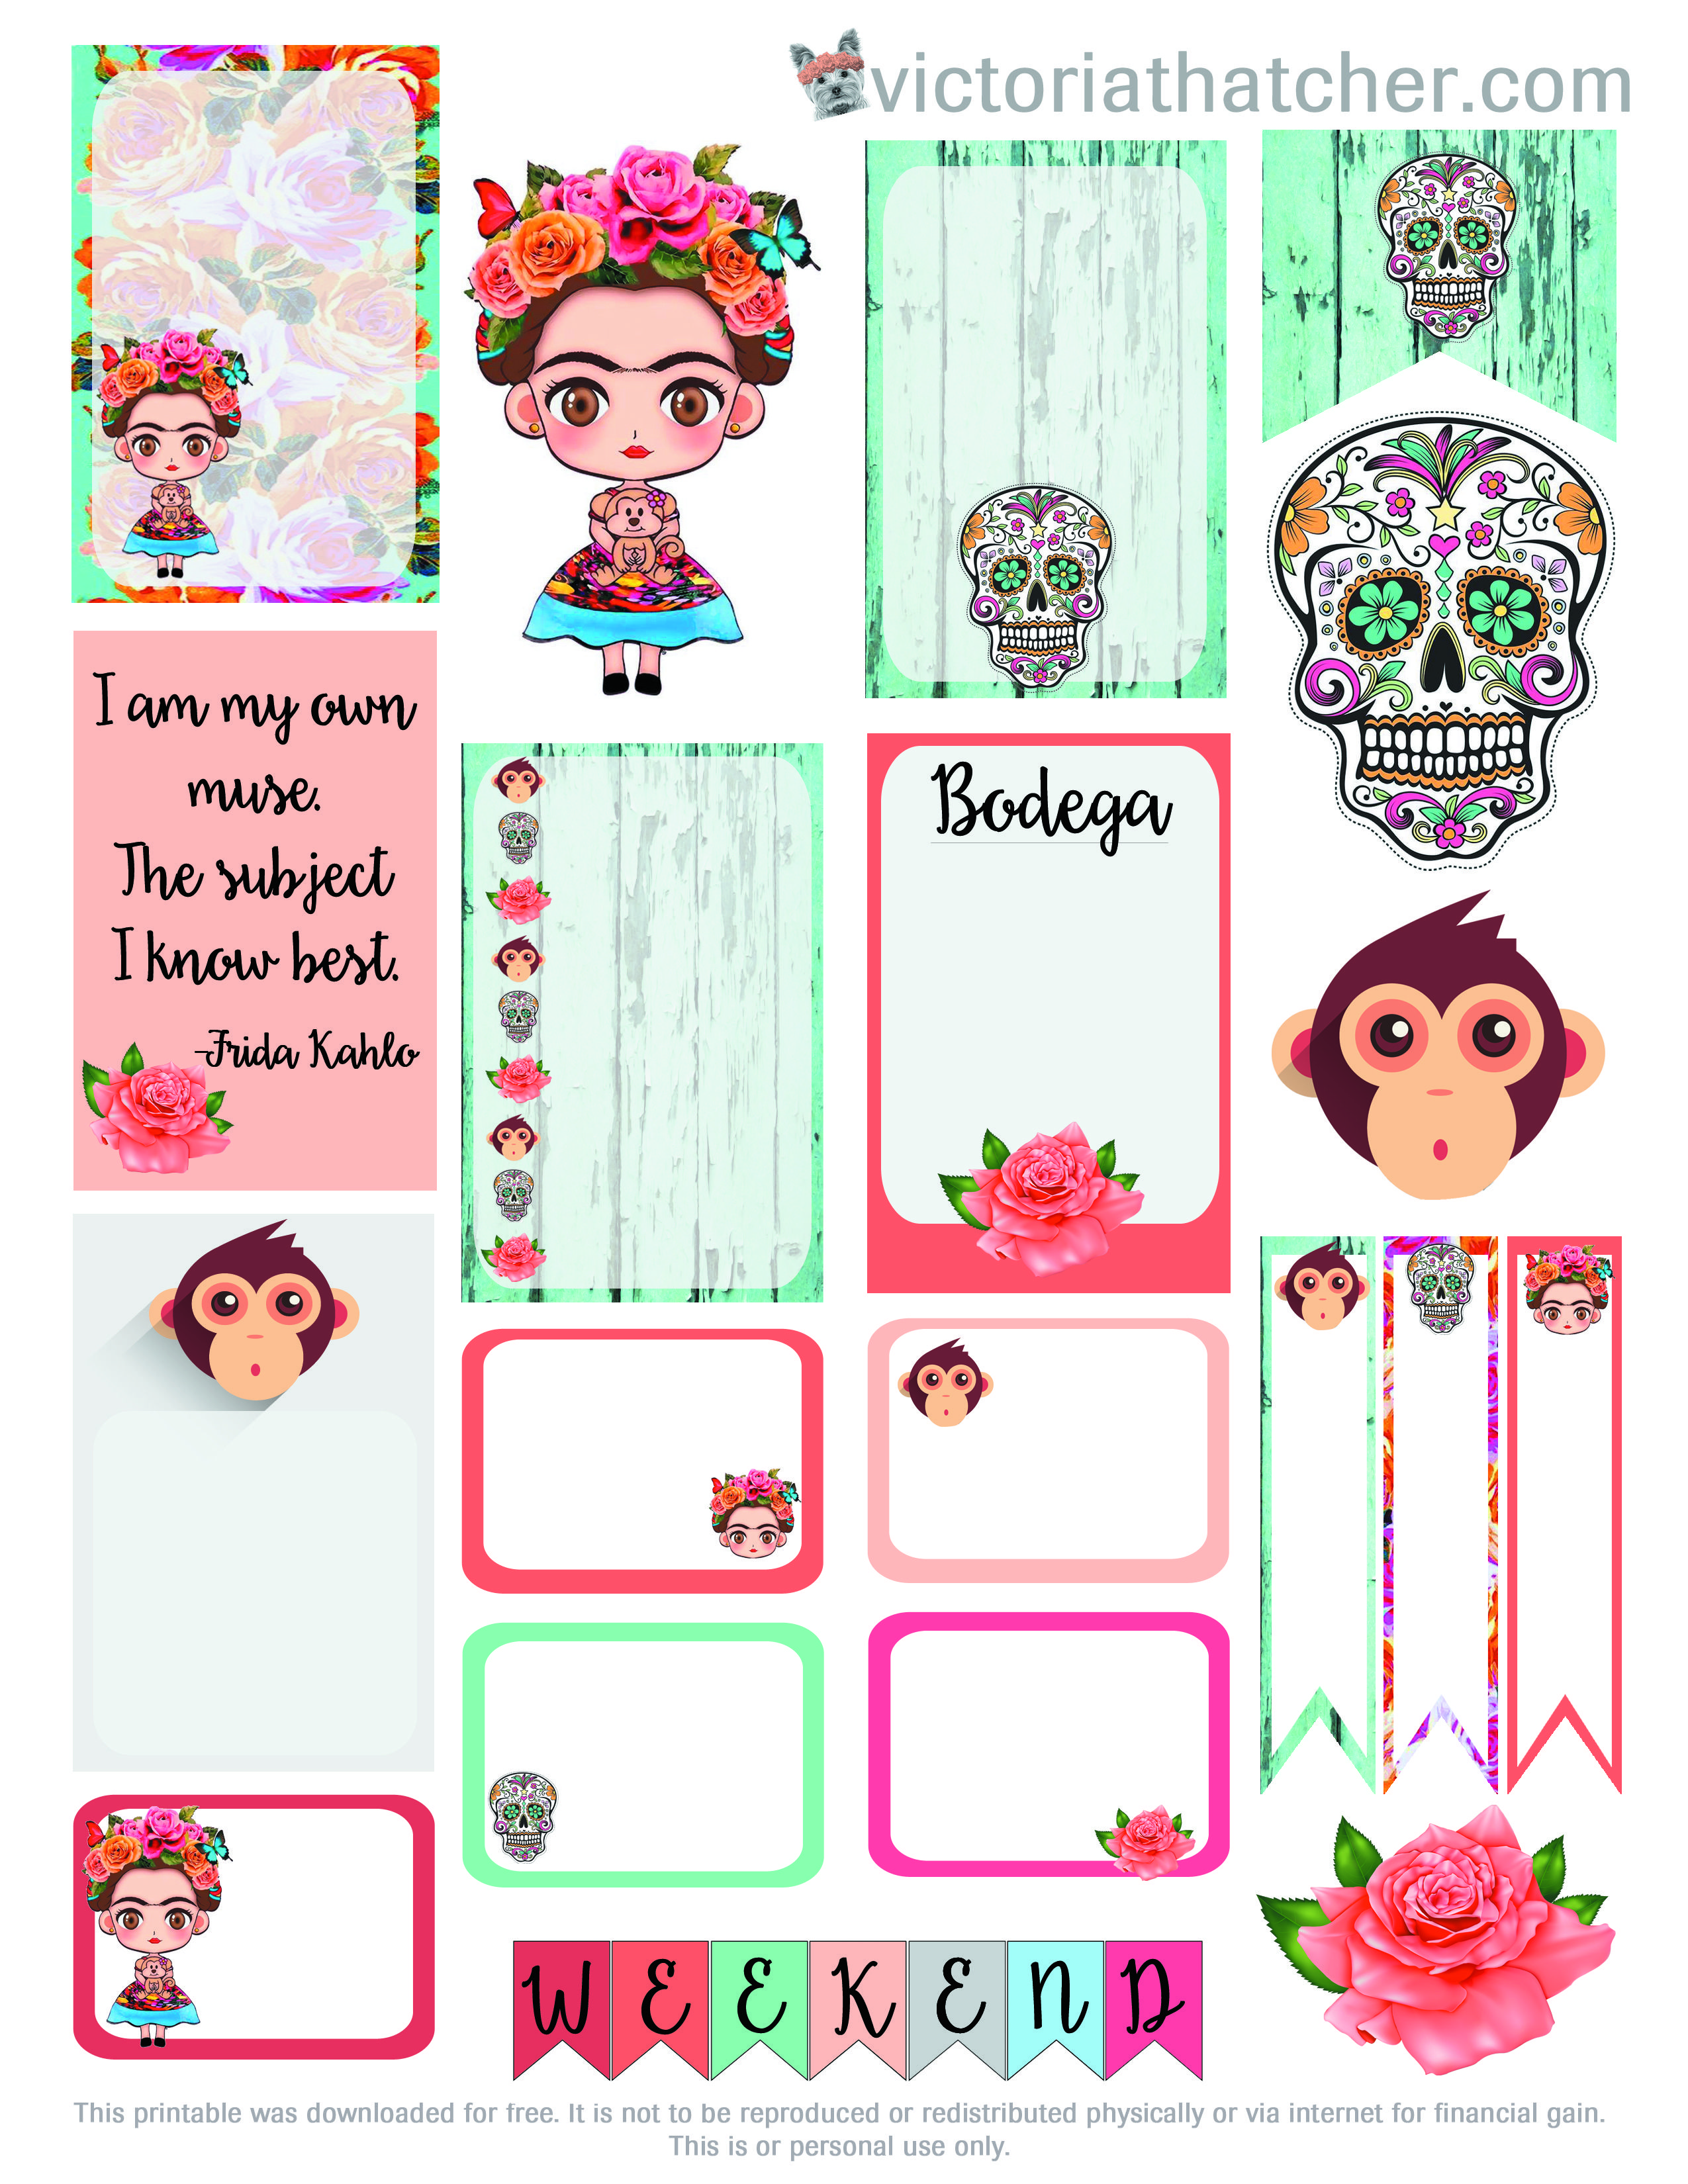 Free Frida Kahlo Planner Printable designed for the large Happy Planner